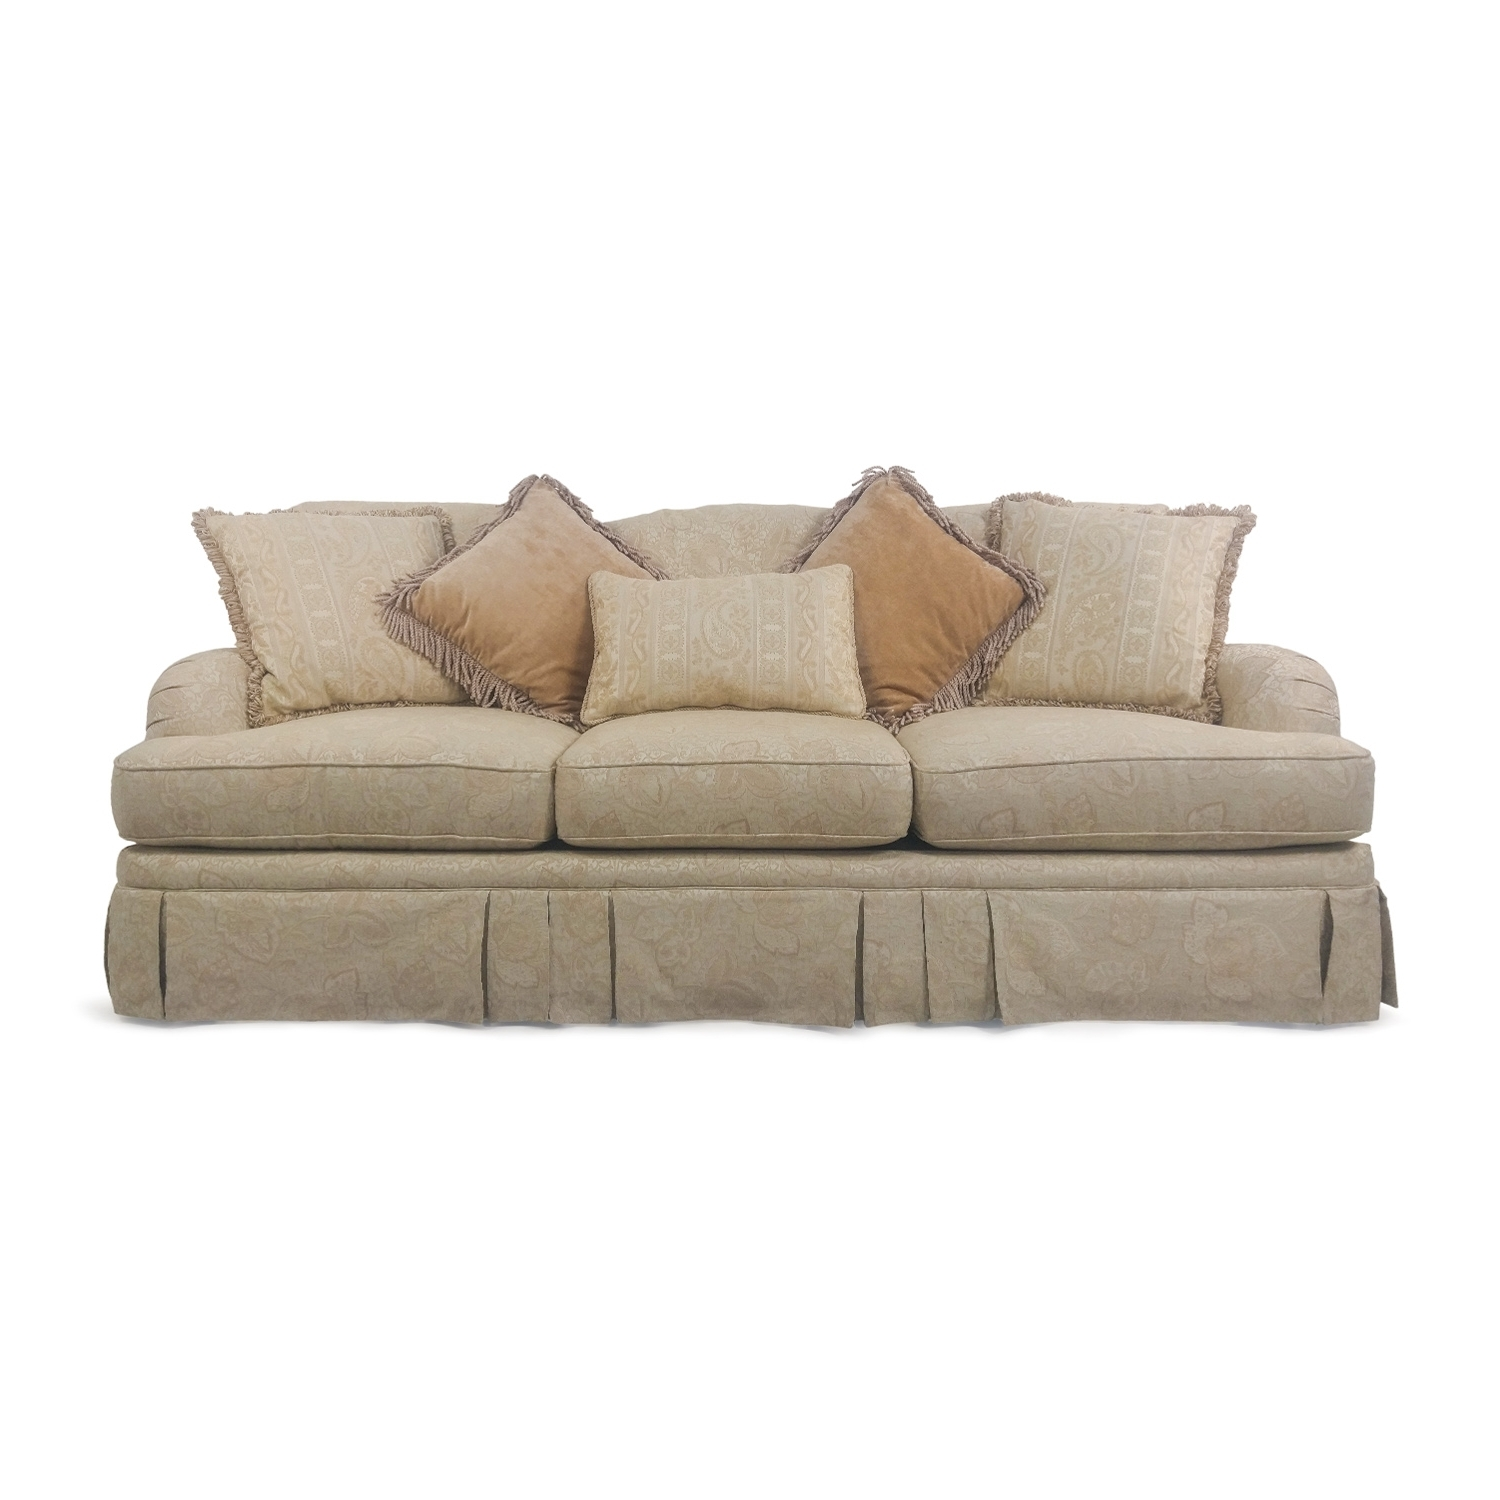 [%84% Off – Thomas Alexander Thomas Alexander Classic Sofa / Sofas With Best And Newest Classic Sofas|classic Sofas In Preferred 84% Off – Thomas Alexander Thomas Alexander Classic Sofa / Sofas|well Known Classic Sofas Pertaining To 84% Off – Thomas Alexander Thomas Alexander Classic Sofa / Sofas|current 84% Off – Thomas Alexander Thomas Alexander Classic Sofa / Sofas Throughout Classic Sofas%] (View 17 of 20)